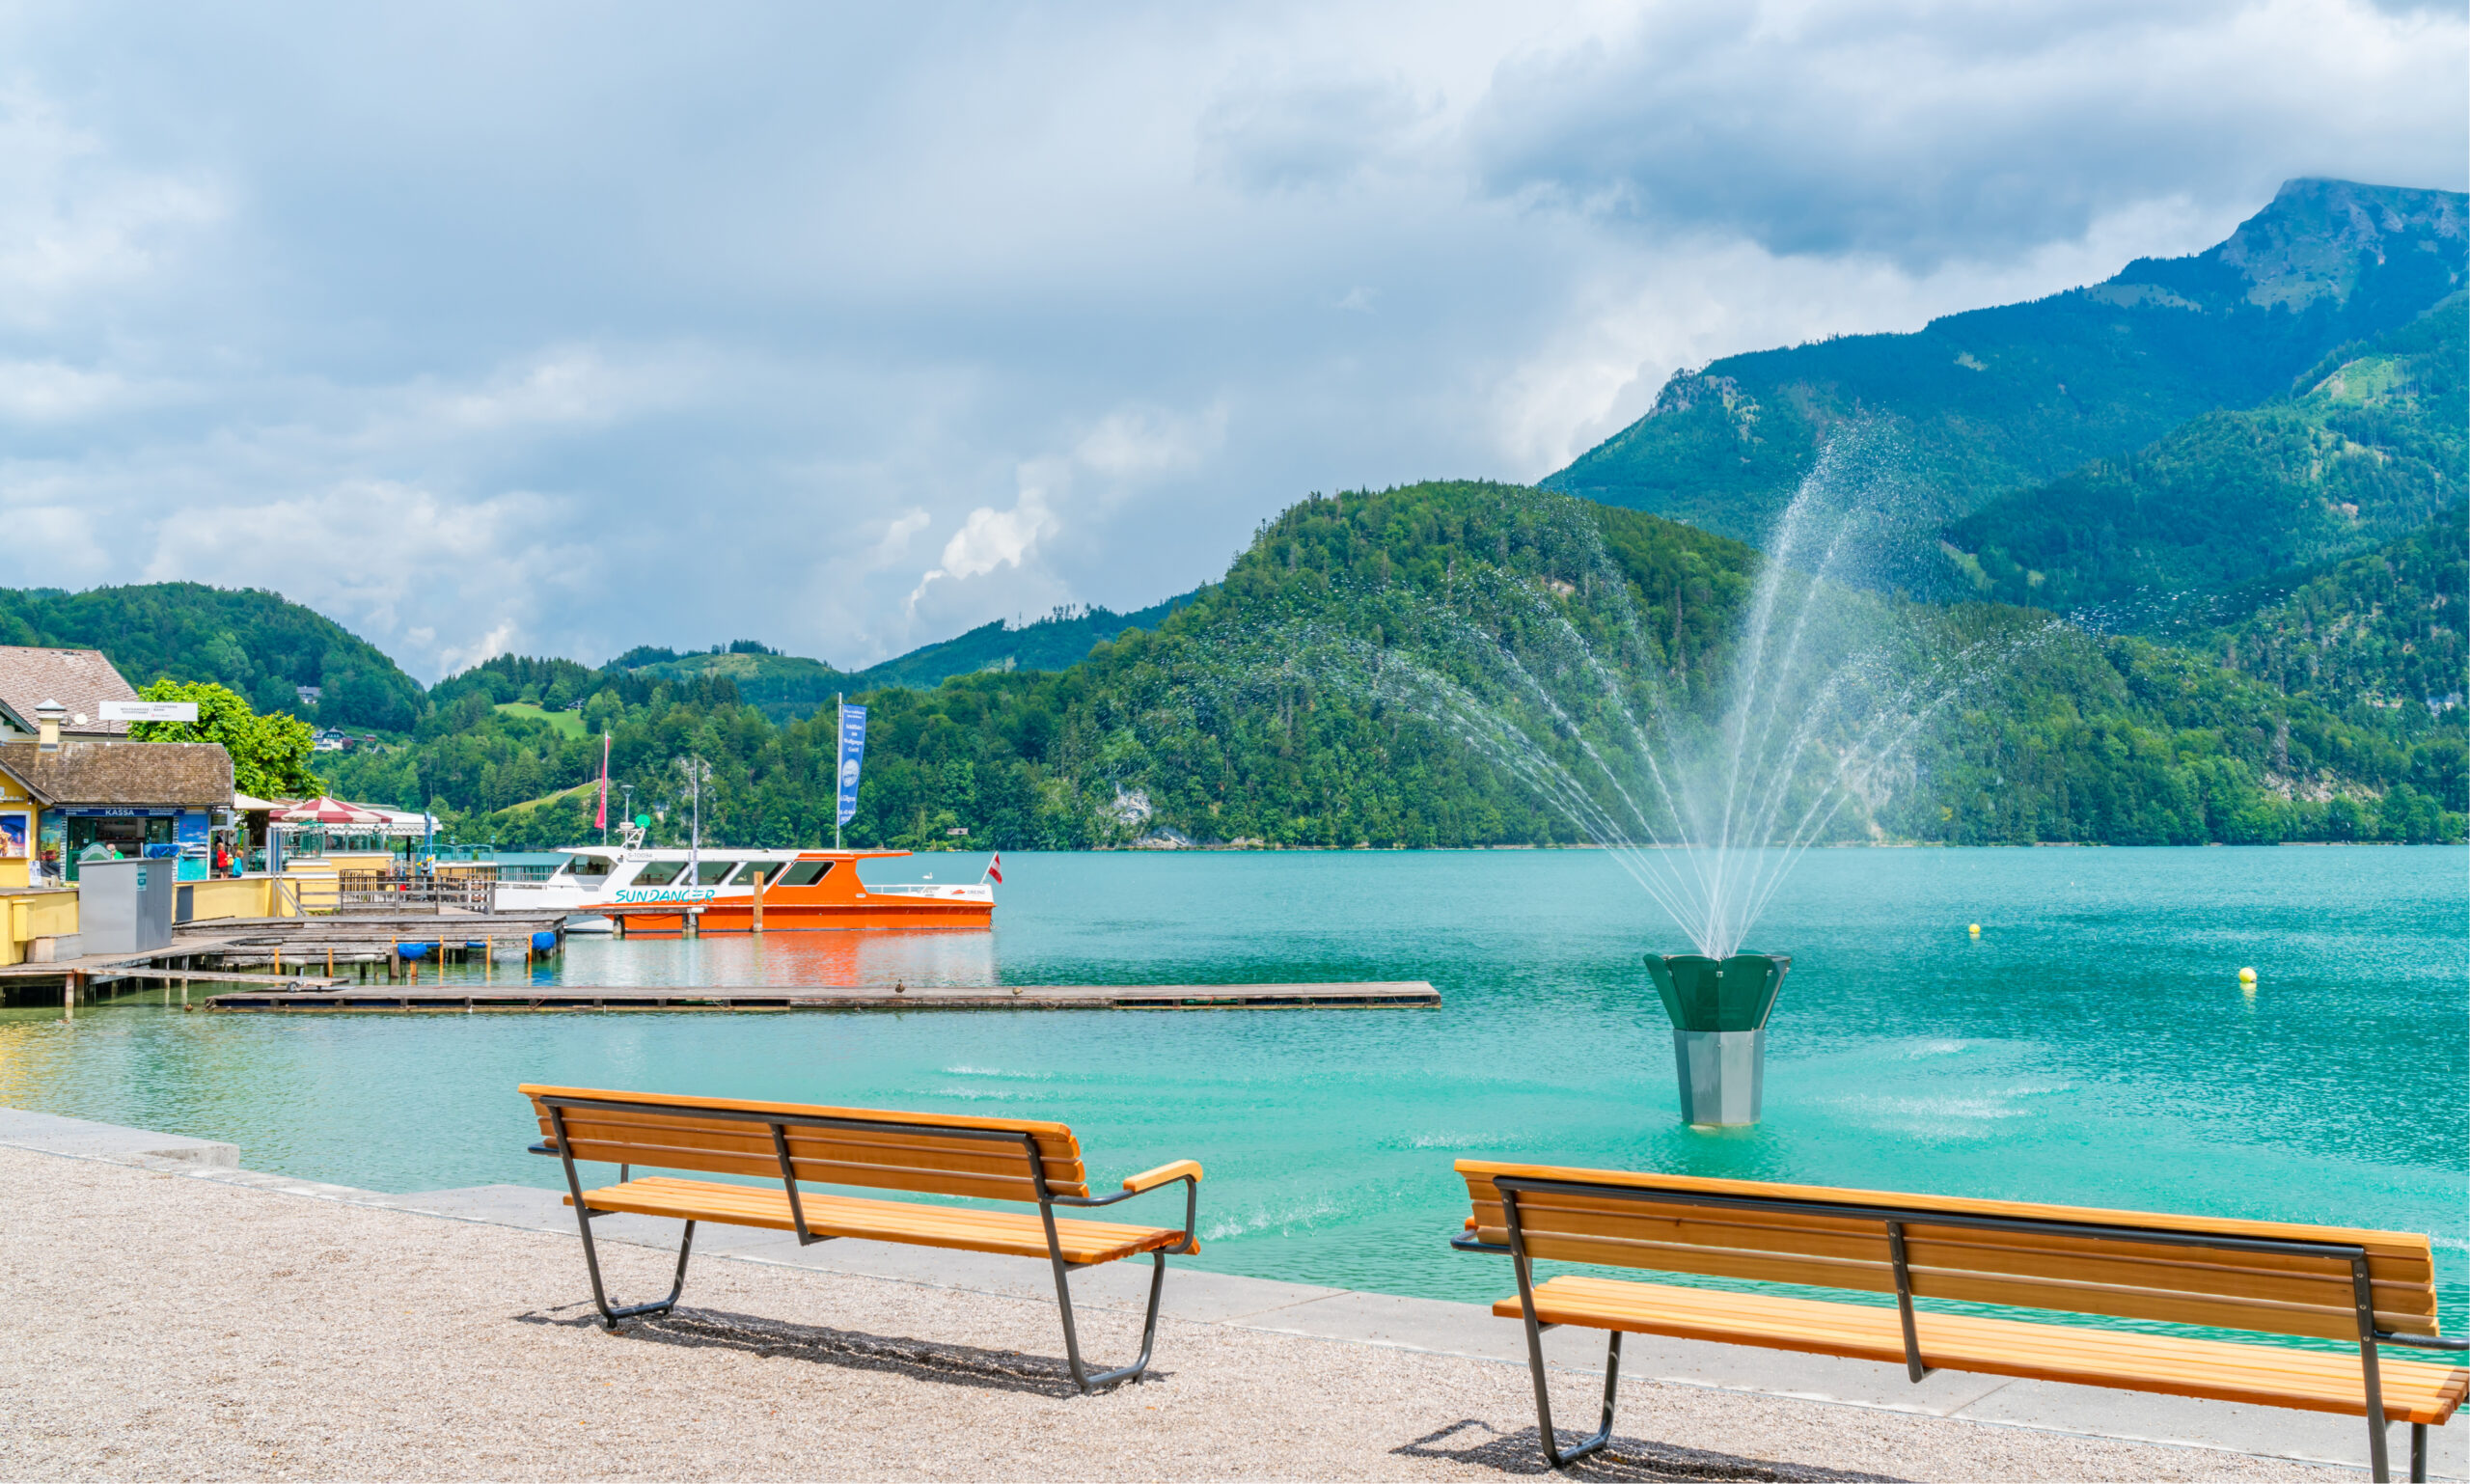 Photo of the stunning blue waters of the Wolfgangsee in St. Gilgen. A small shop with a dock and boat are featured on the left. Two wooden benches are in the foreground facing the Wolfgangsee water that has a pretty fountain in the middle. Lush green mountains are in the background.